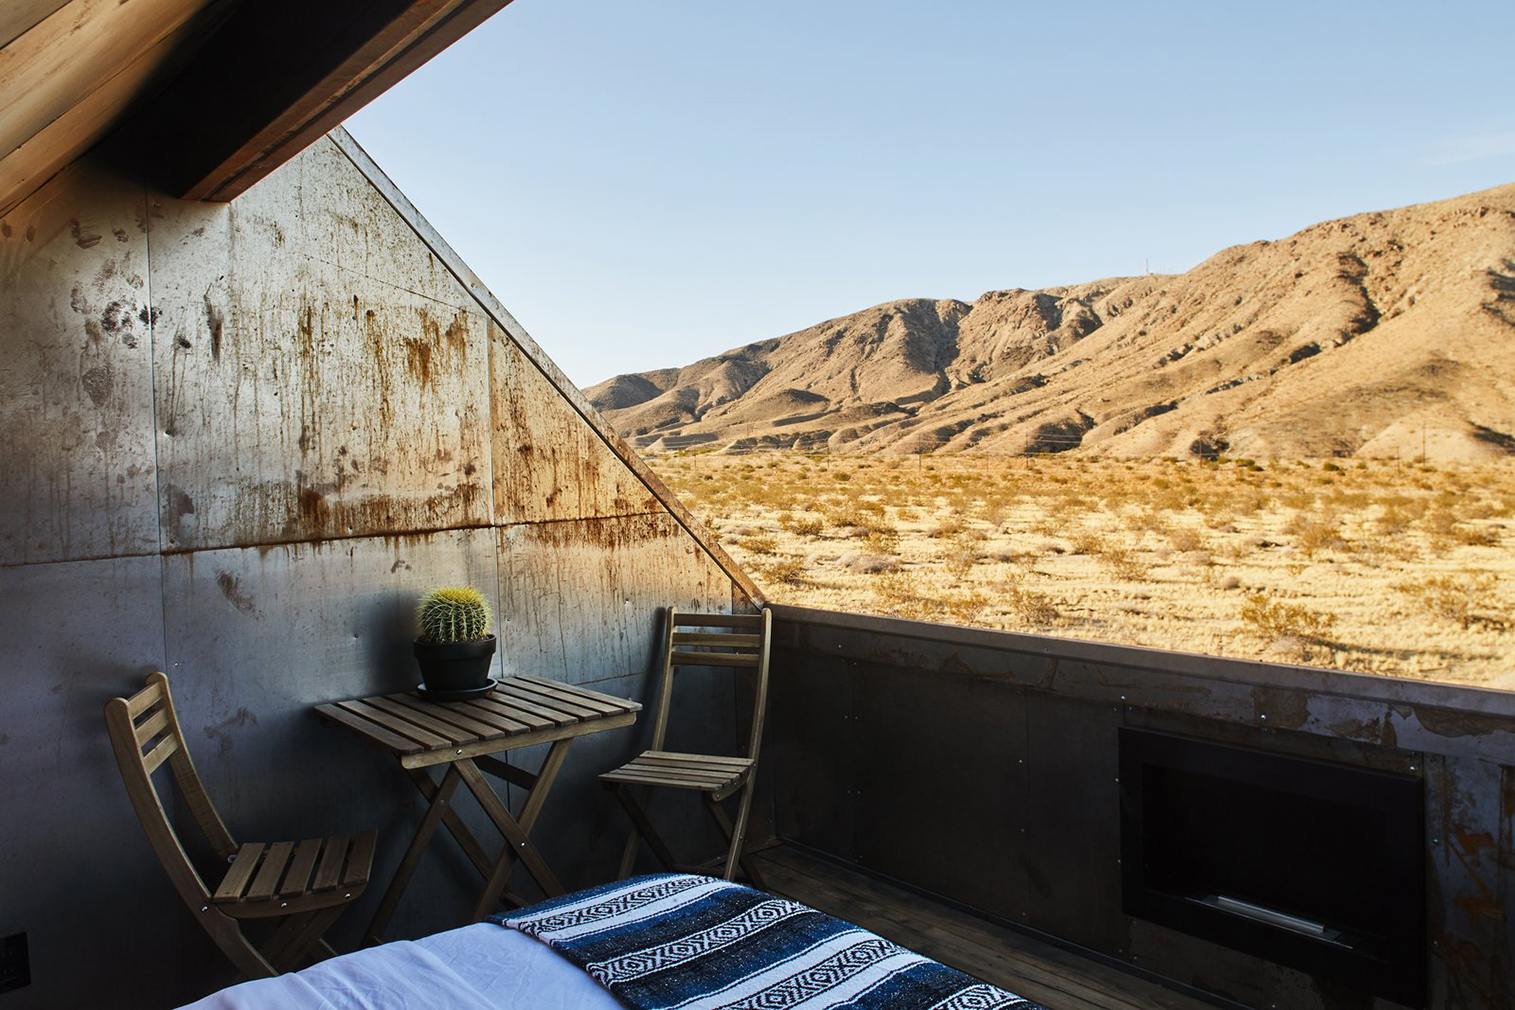 Folly Cabins for rent Joshua Tree National Park. Photography: Sam Frost